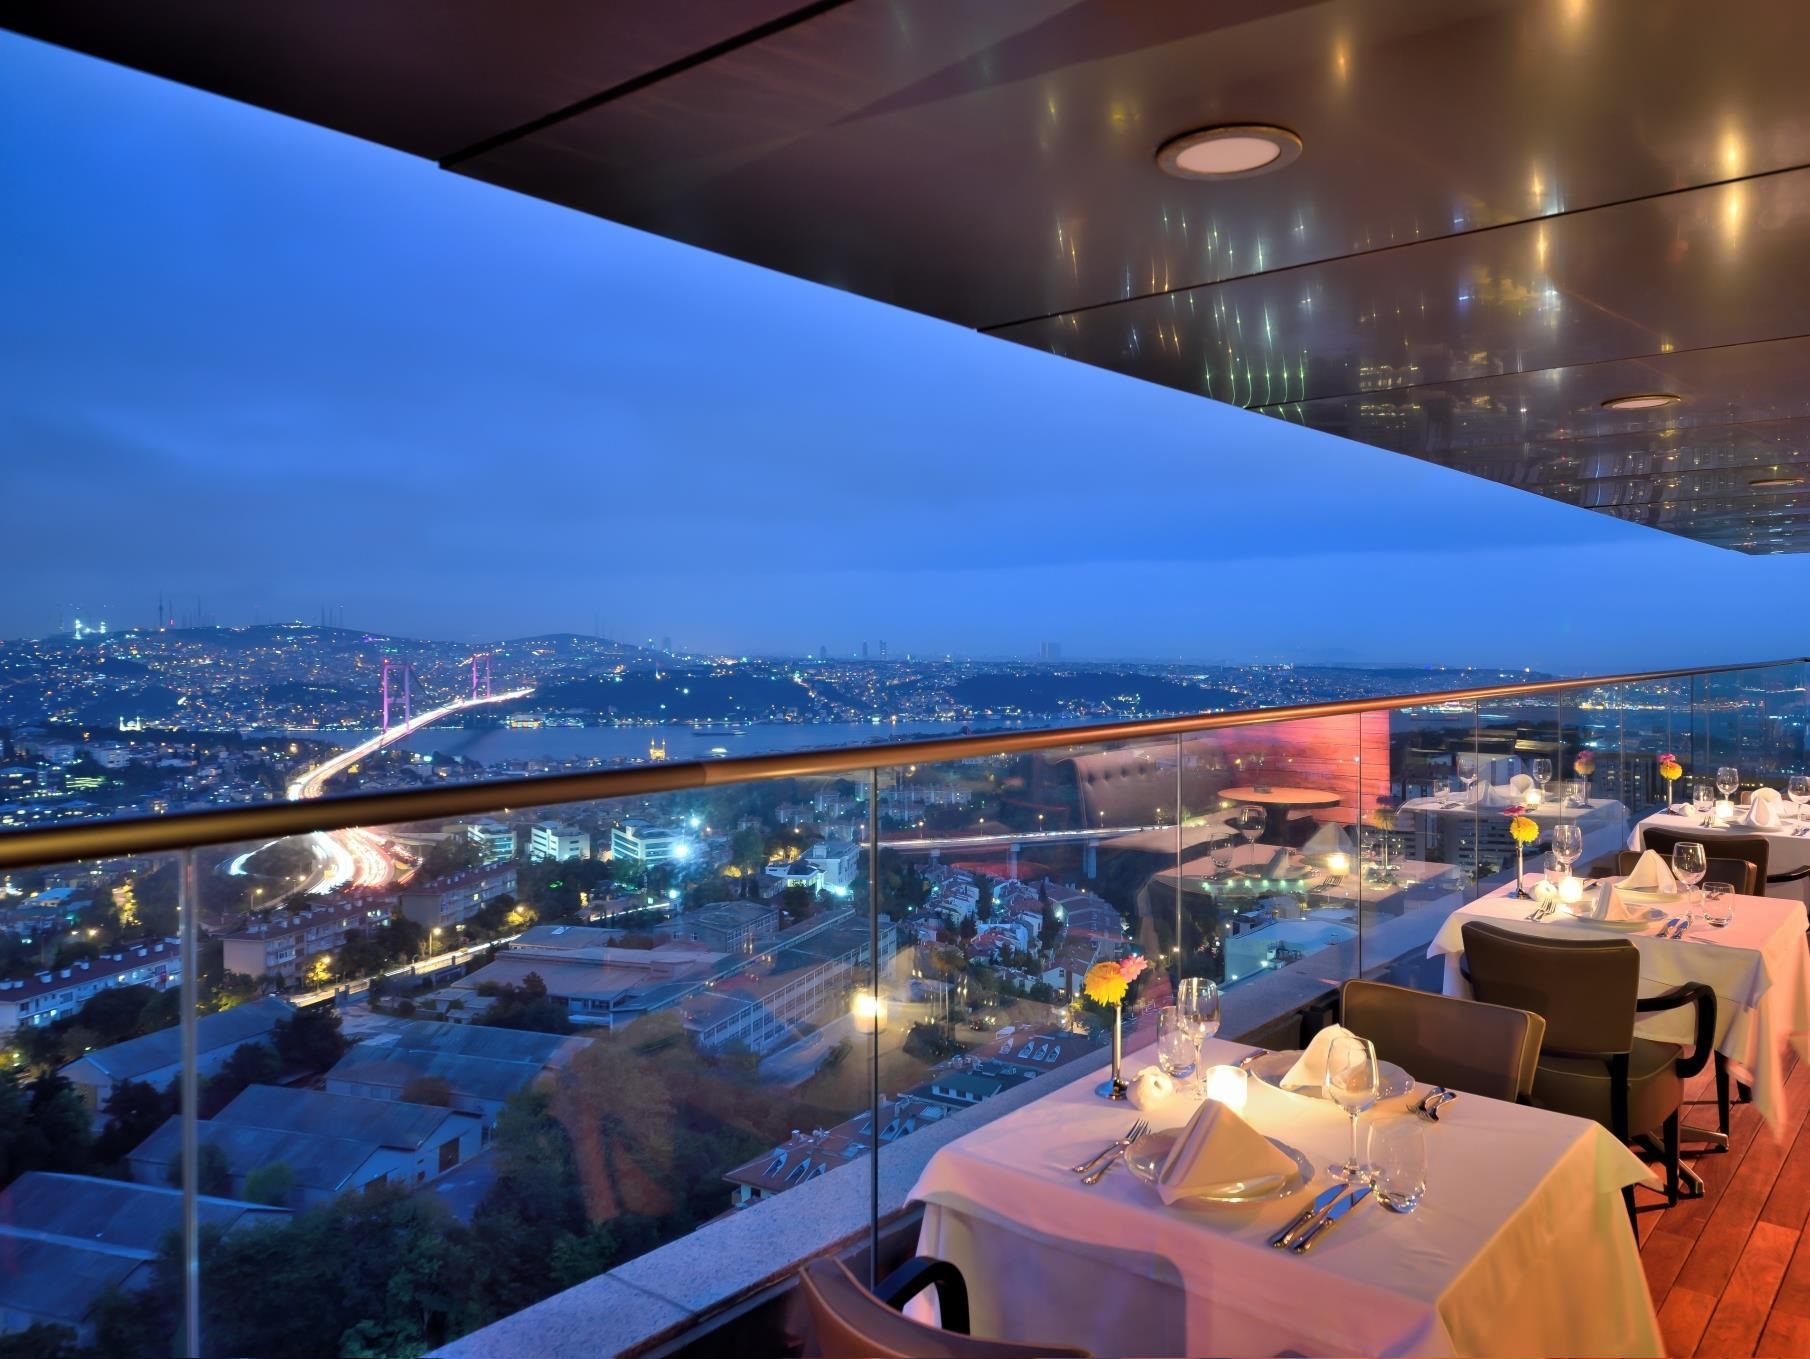 Mercure Istanbul The Plaza Bosphorus